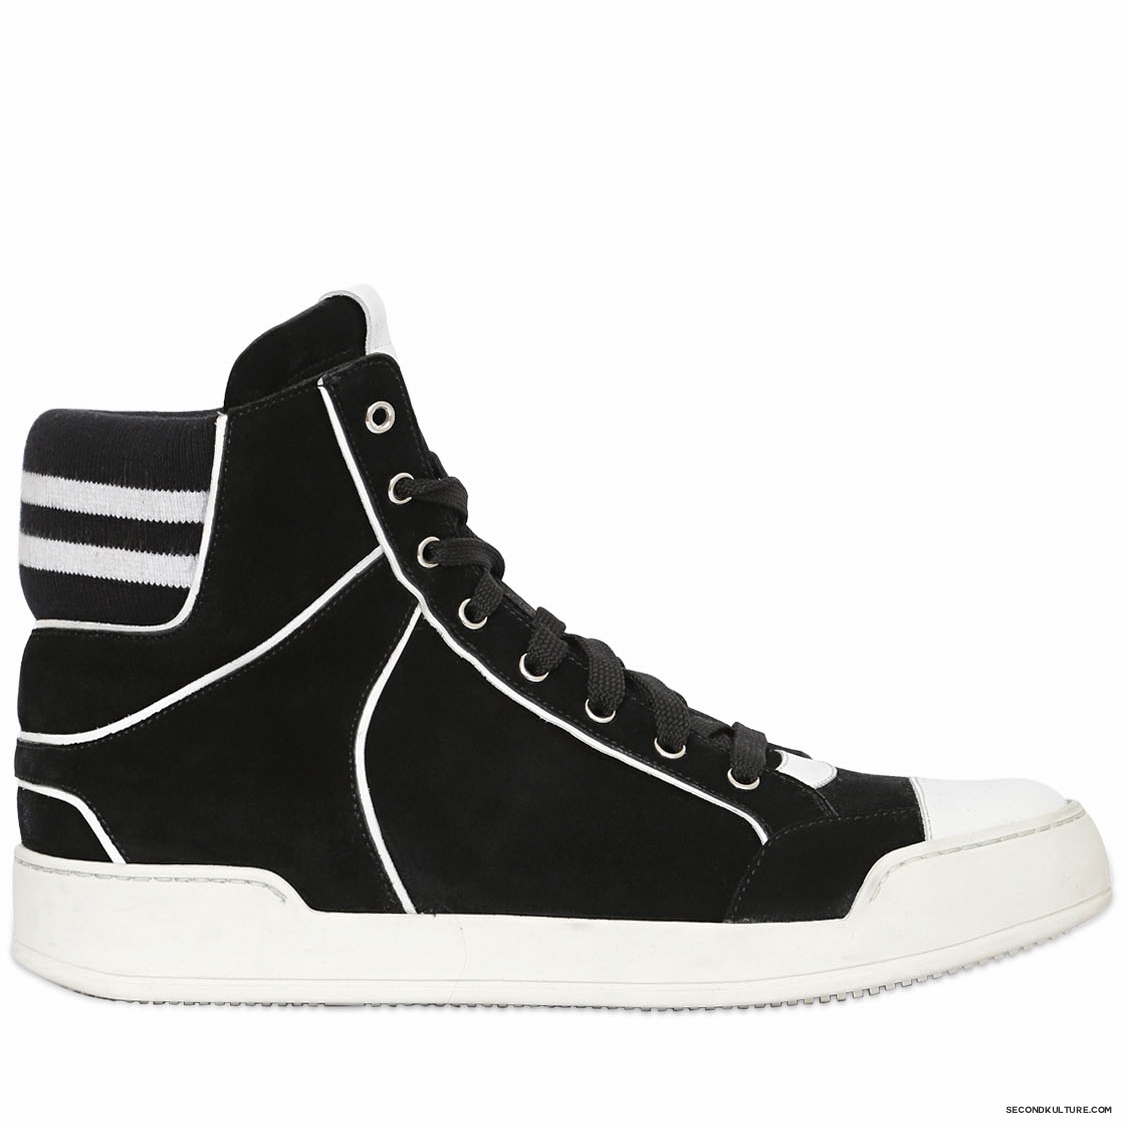 Balmain-Black-and-White-Suede-High-Top-Sneakers-Fall-Winter-2015-1